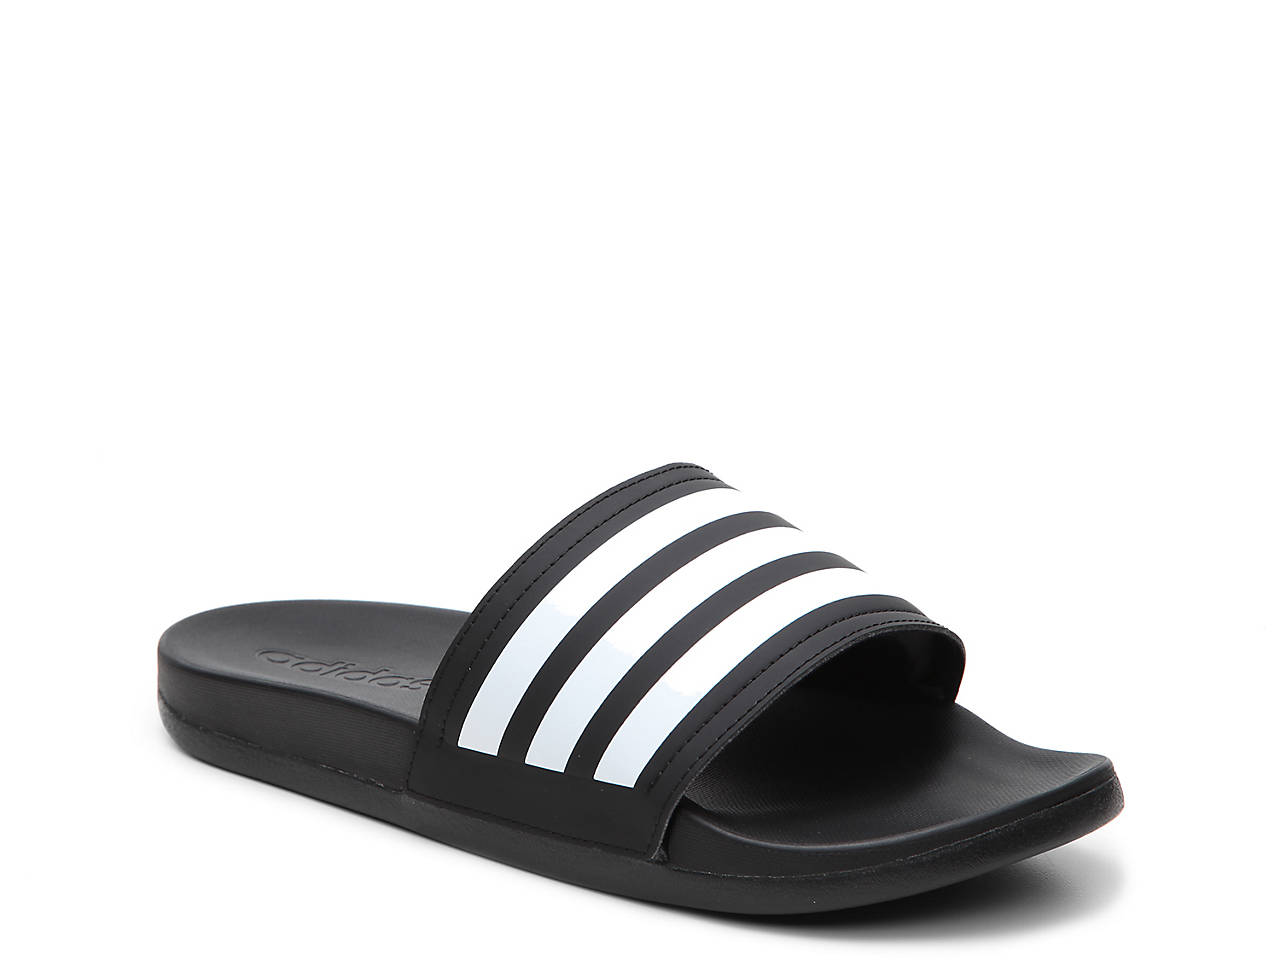 63ede8a40bd9 adidas Adilette Cloudfoam Ultra Stripes Slide Sandal - Women s ...